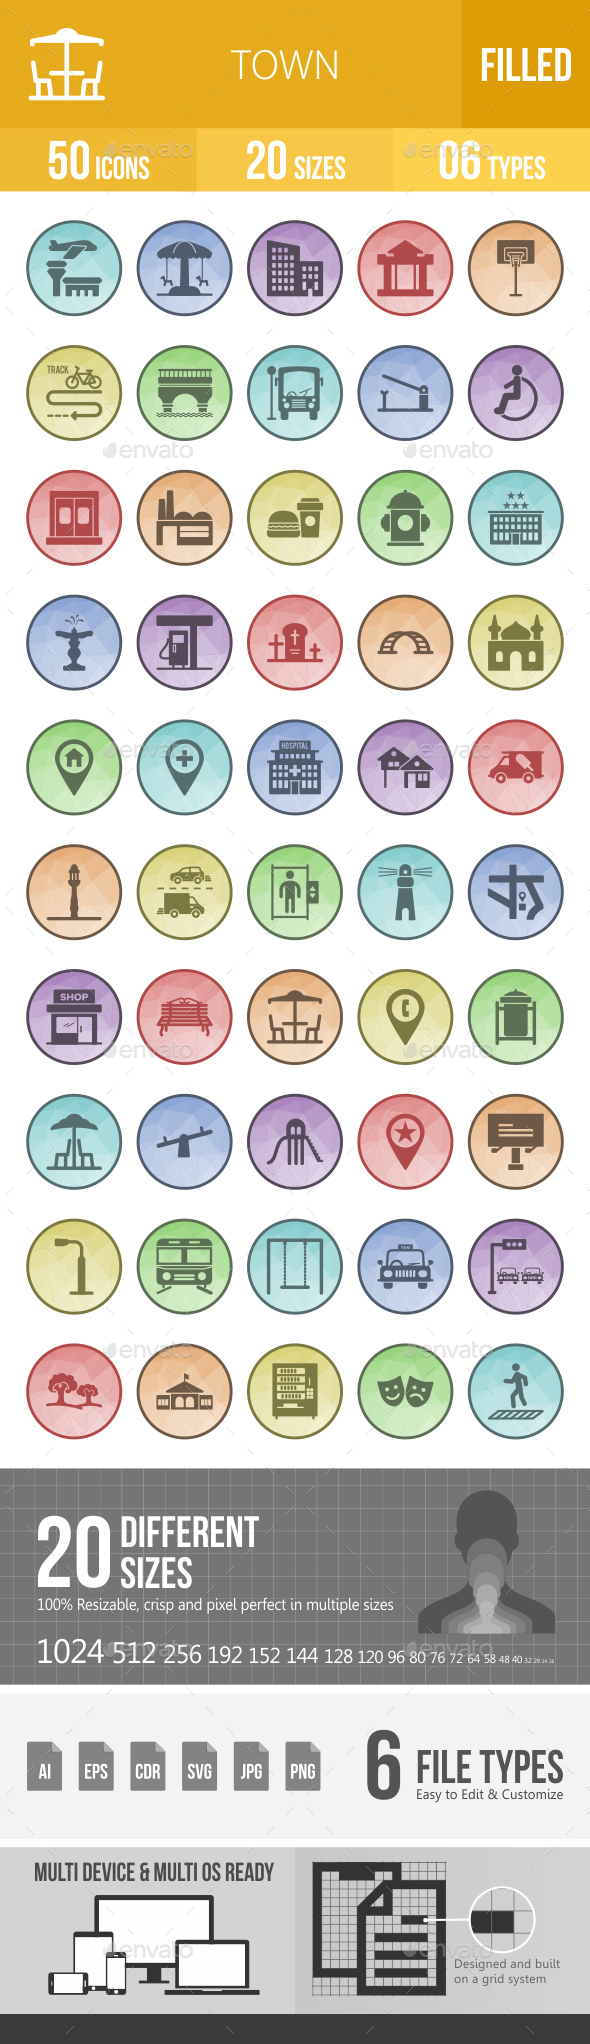 50 Town Filled Low Poly B/G Icons - Icons